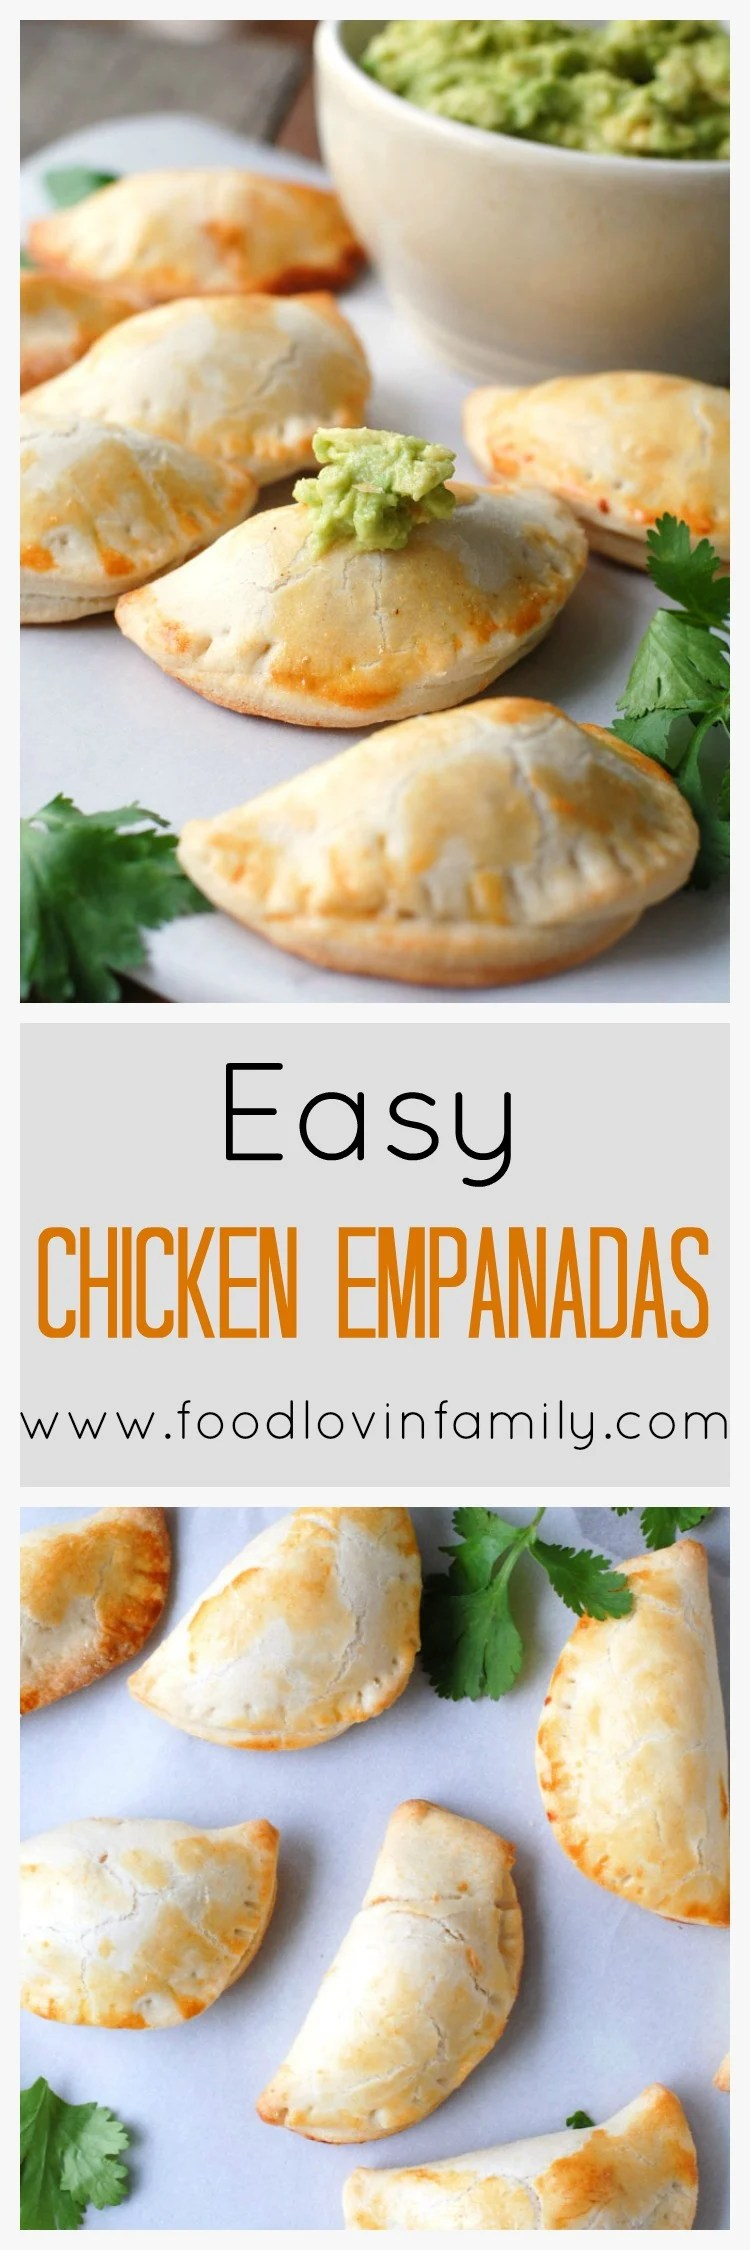 Easy Chicken Empanadas are a little cheesy, spicy, and delicious, making them the perfect party food.